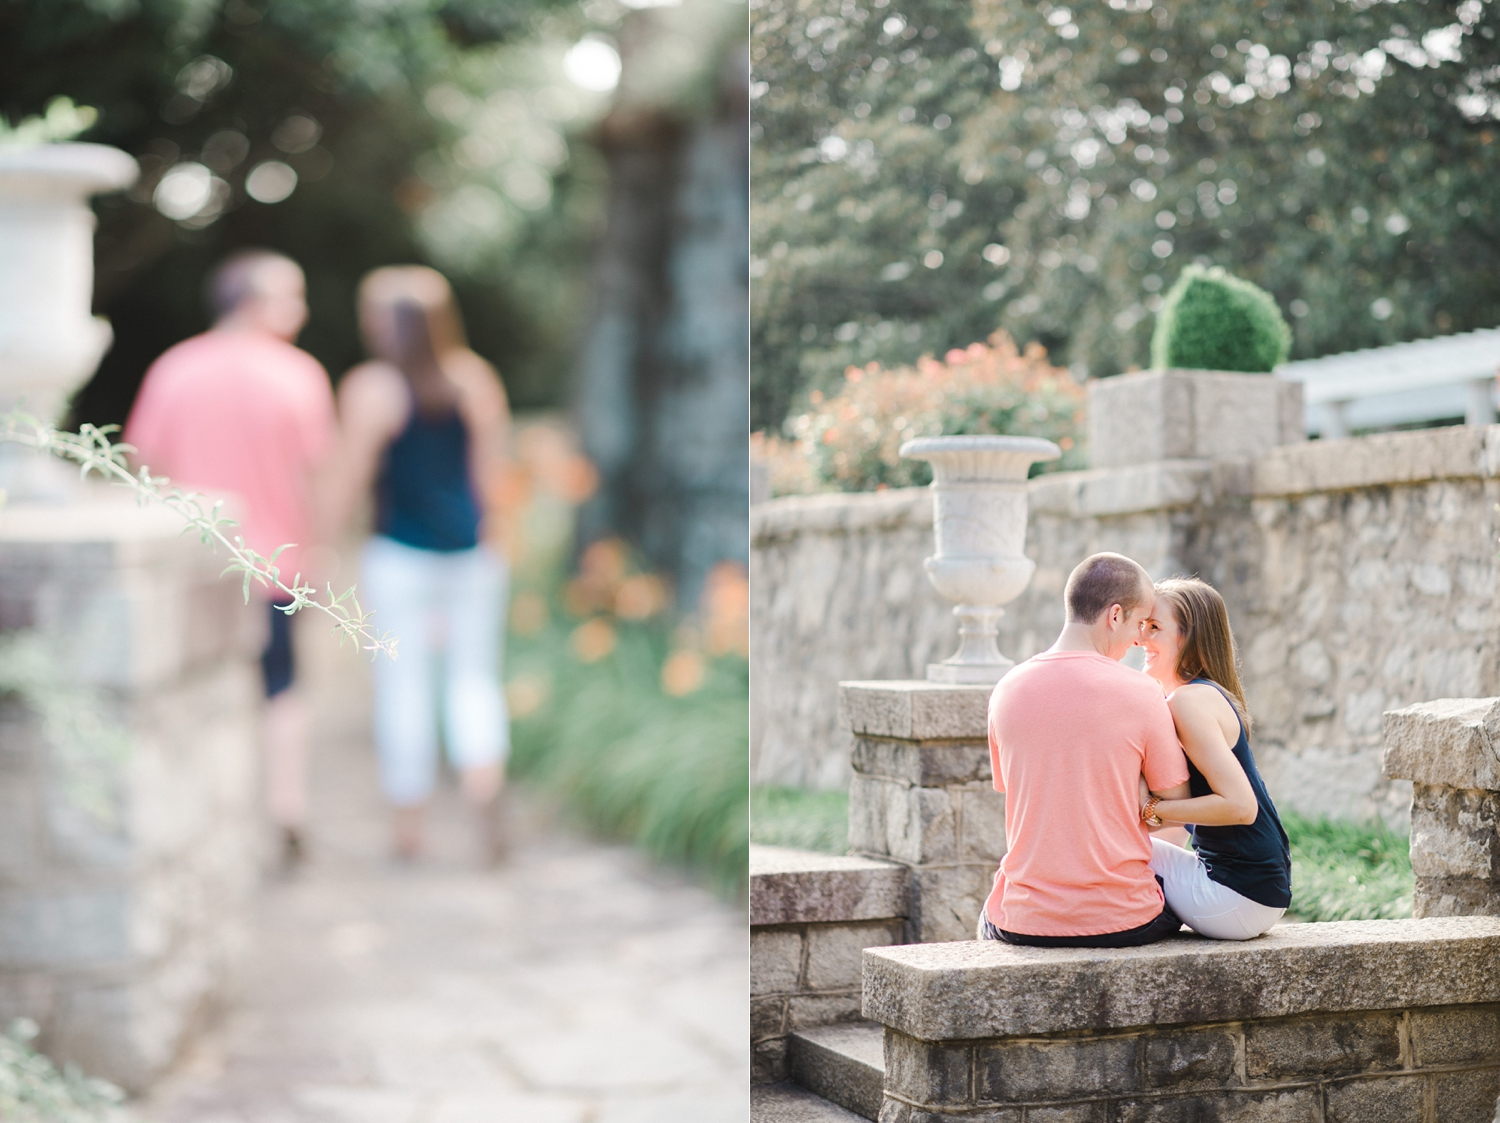 Maymon_Park_richmond_engagement_photography_0012.jpg